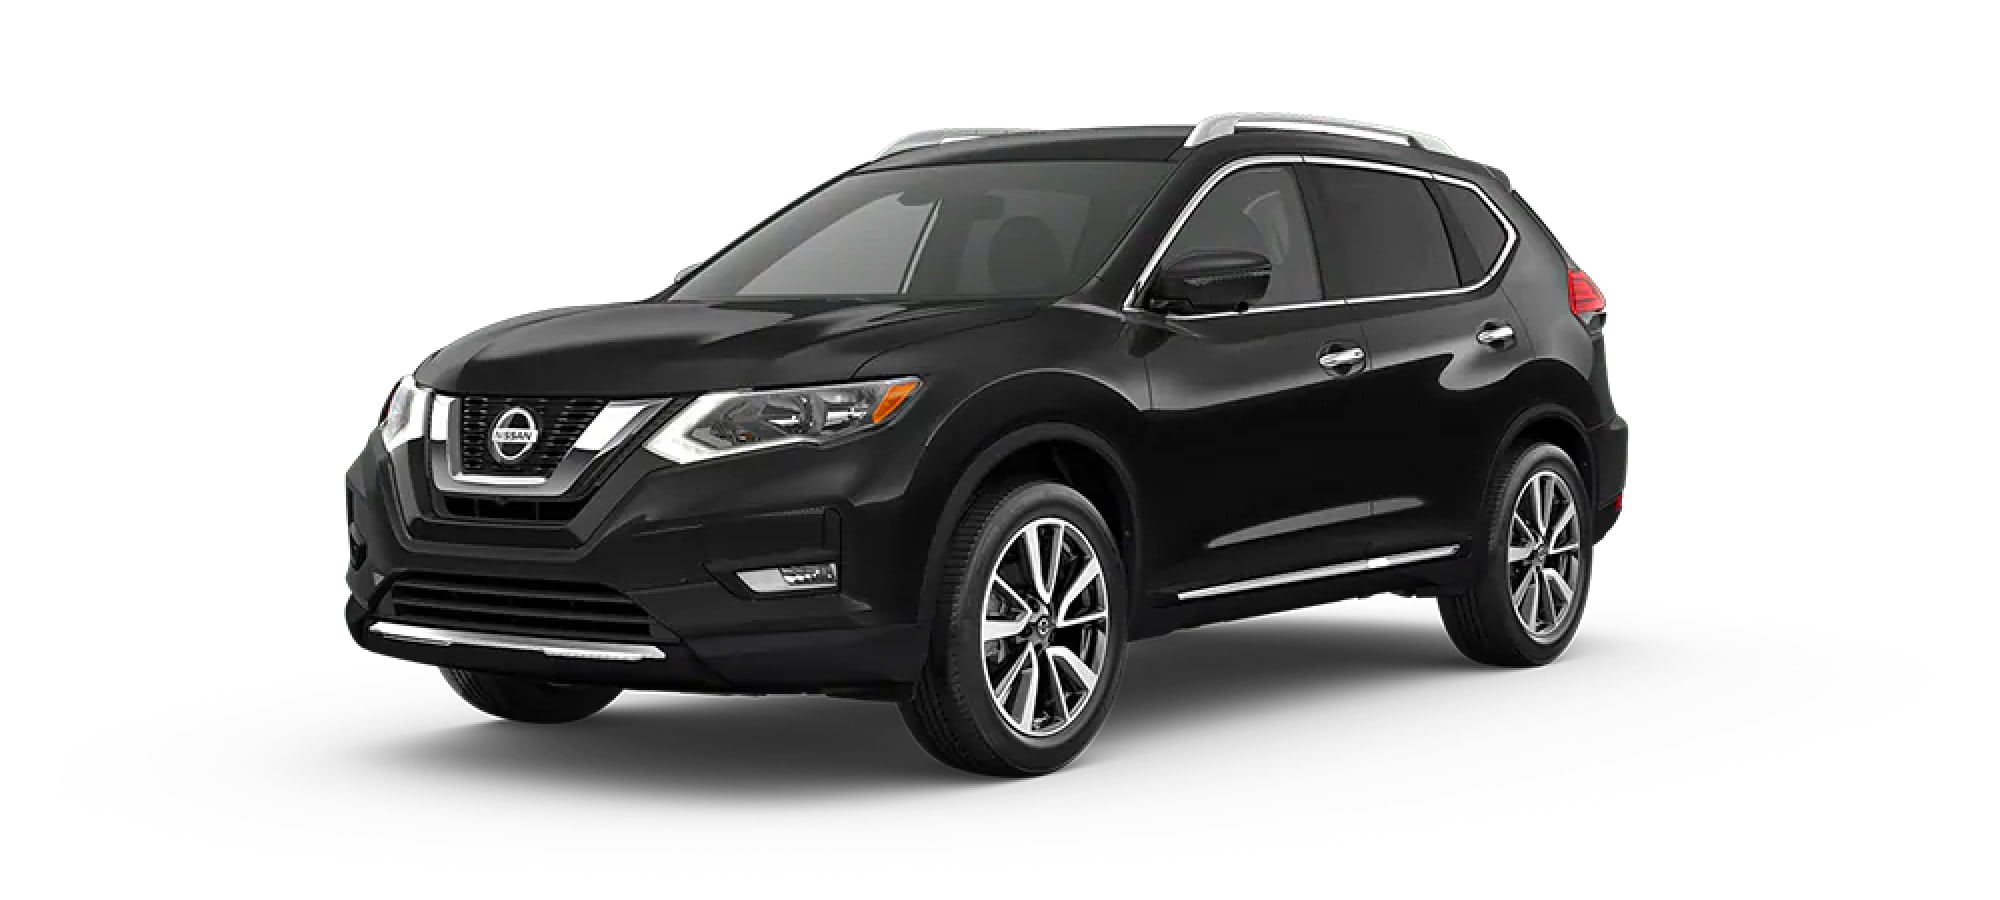 2020 Nissan Rogue in Magnetic Black Pearl